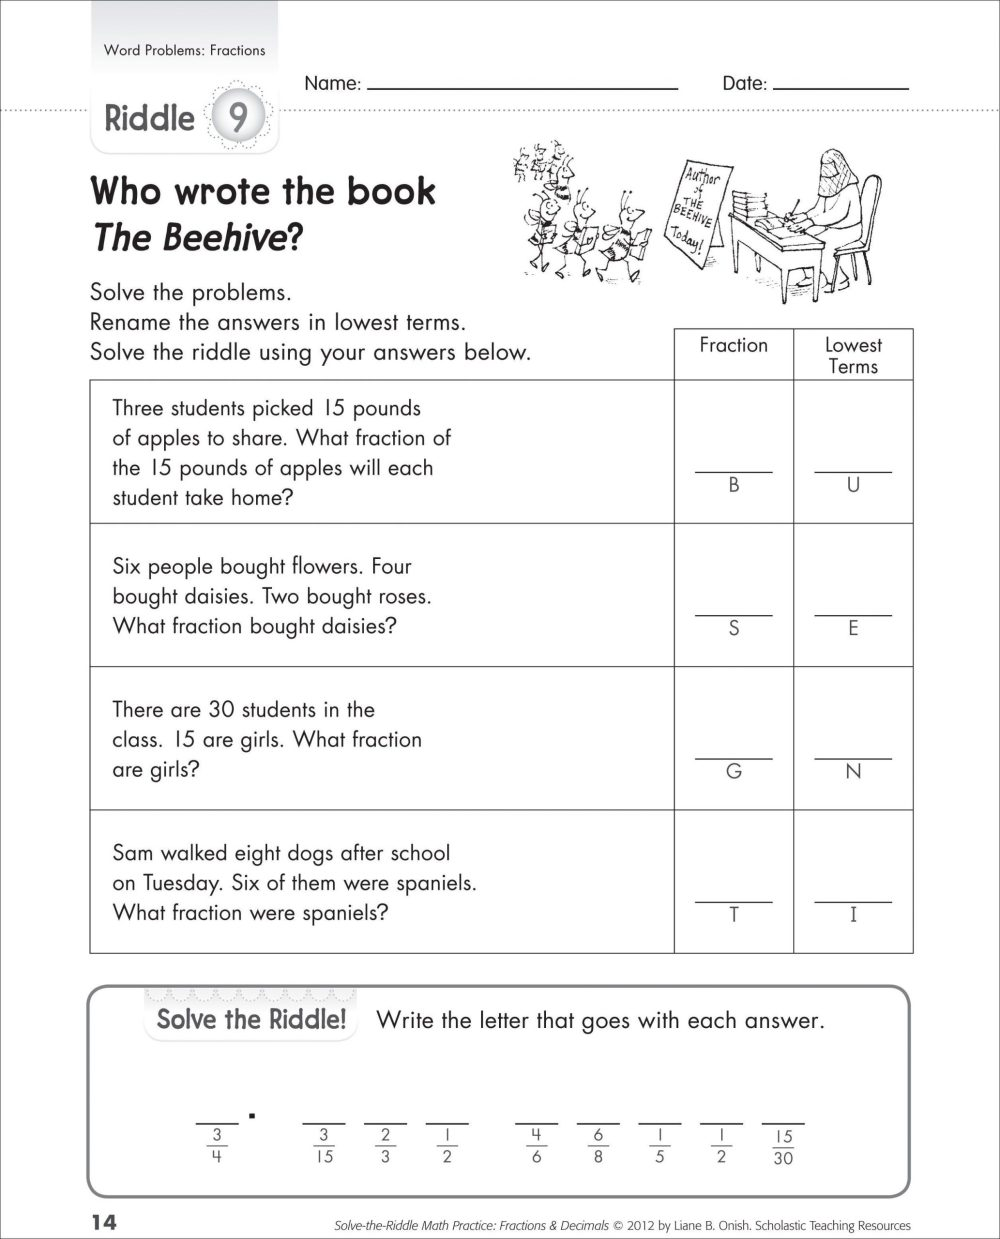 medium resolution of Writing Inequalities Word Problems Worksheet   Printable Worksheets and  Activities for Teachers